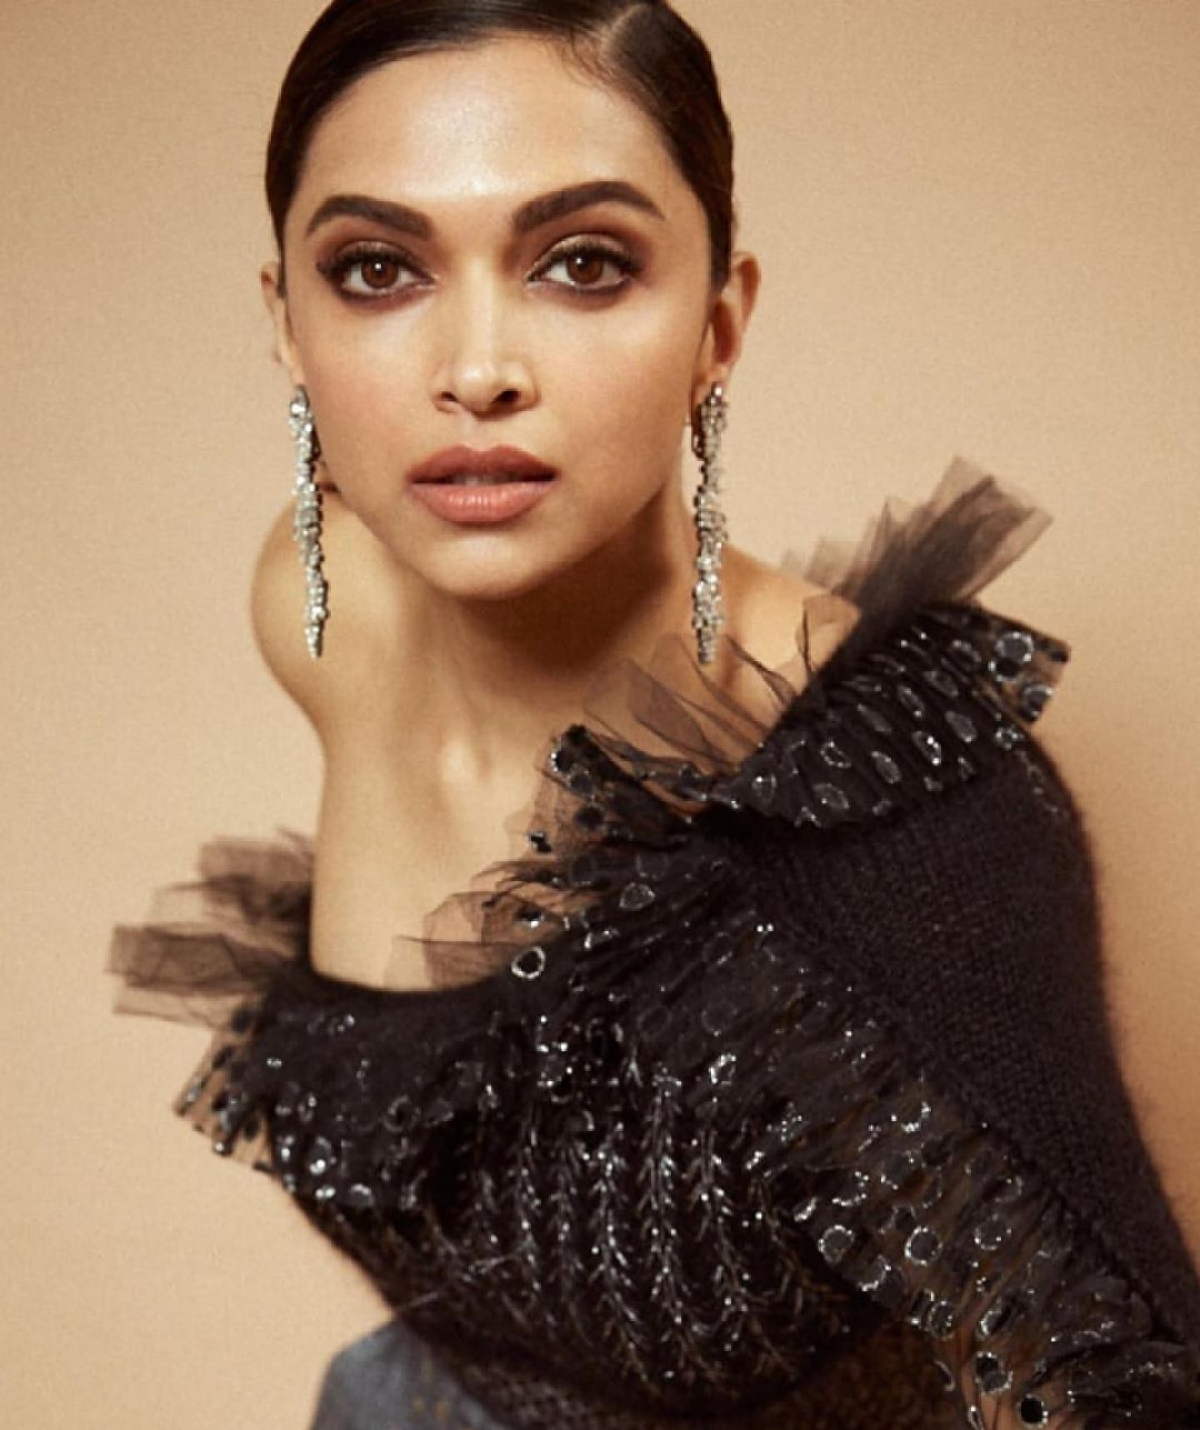 Deepika Padukone's black swan outfit is proof that money can't buy style